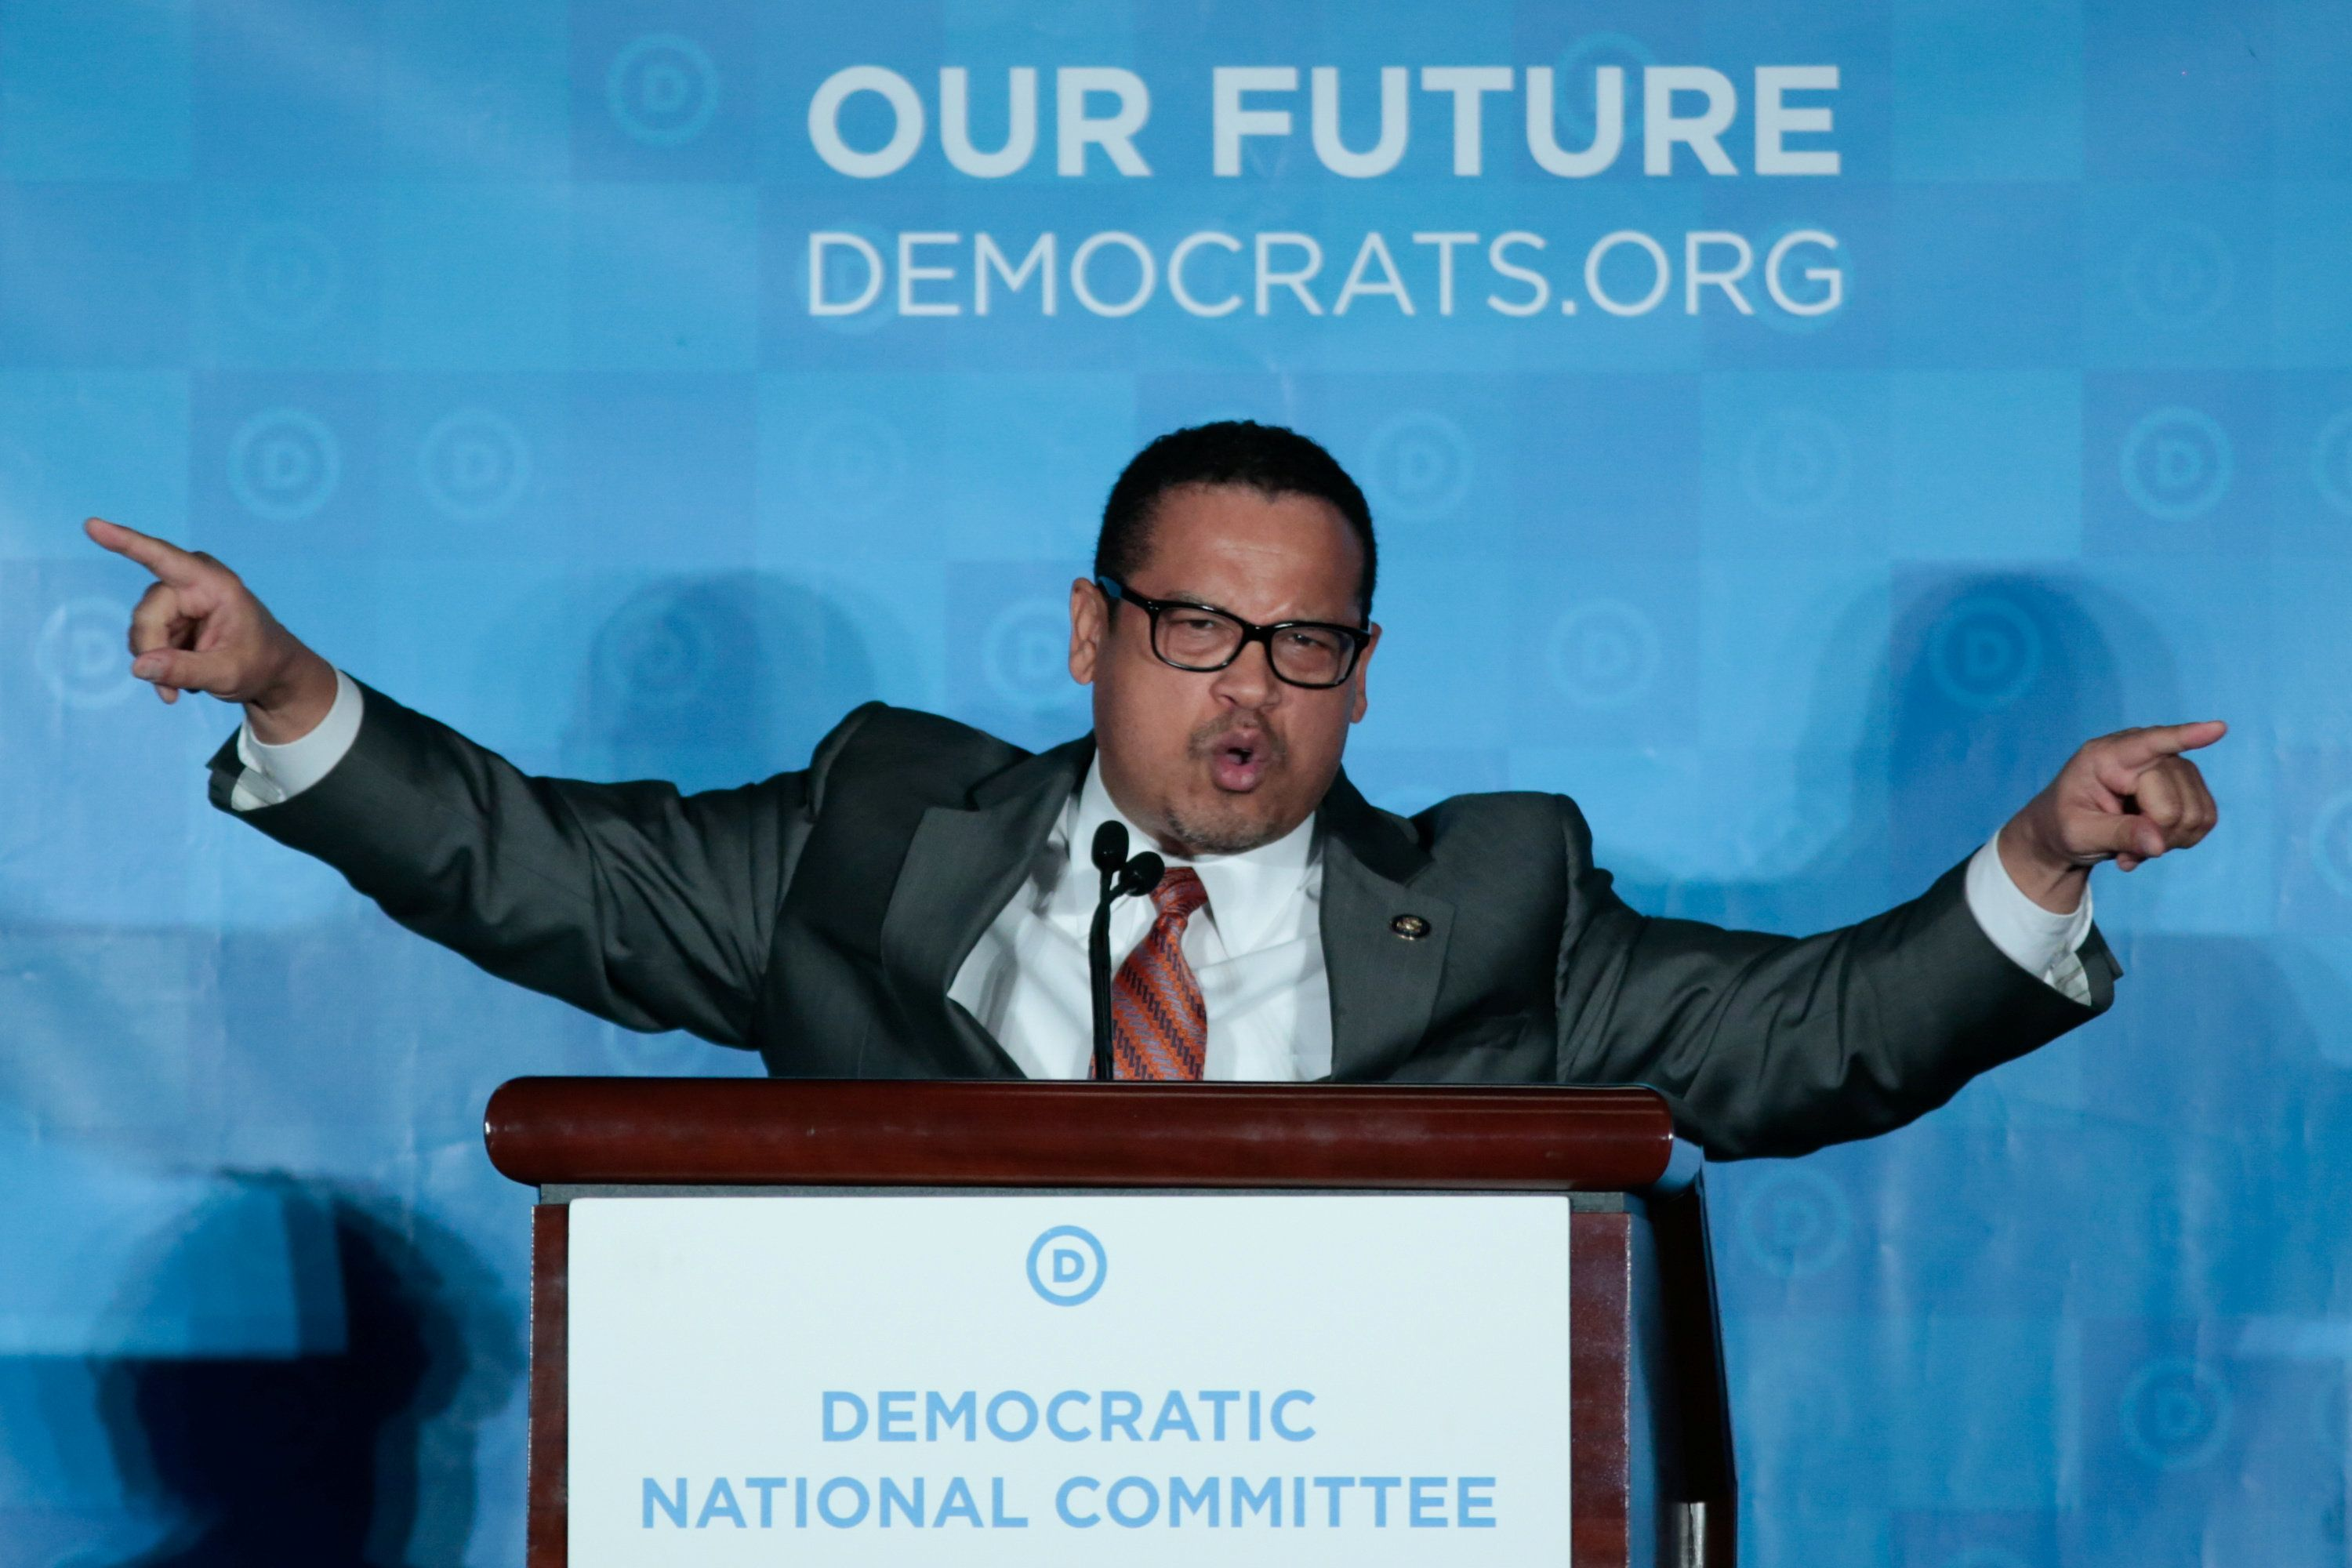 Keith Ellison addresses the audience as the Democratic National Committee holds an election in Atlanta on Feb. 25, 2017. He l